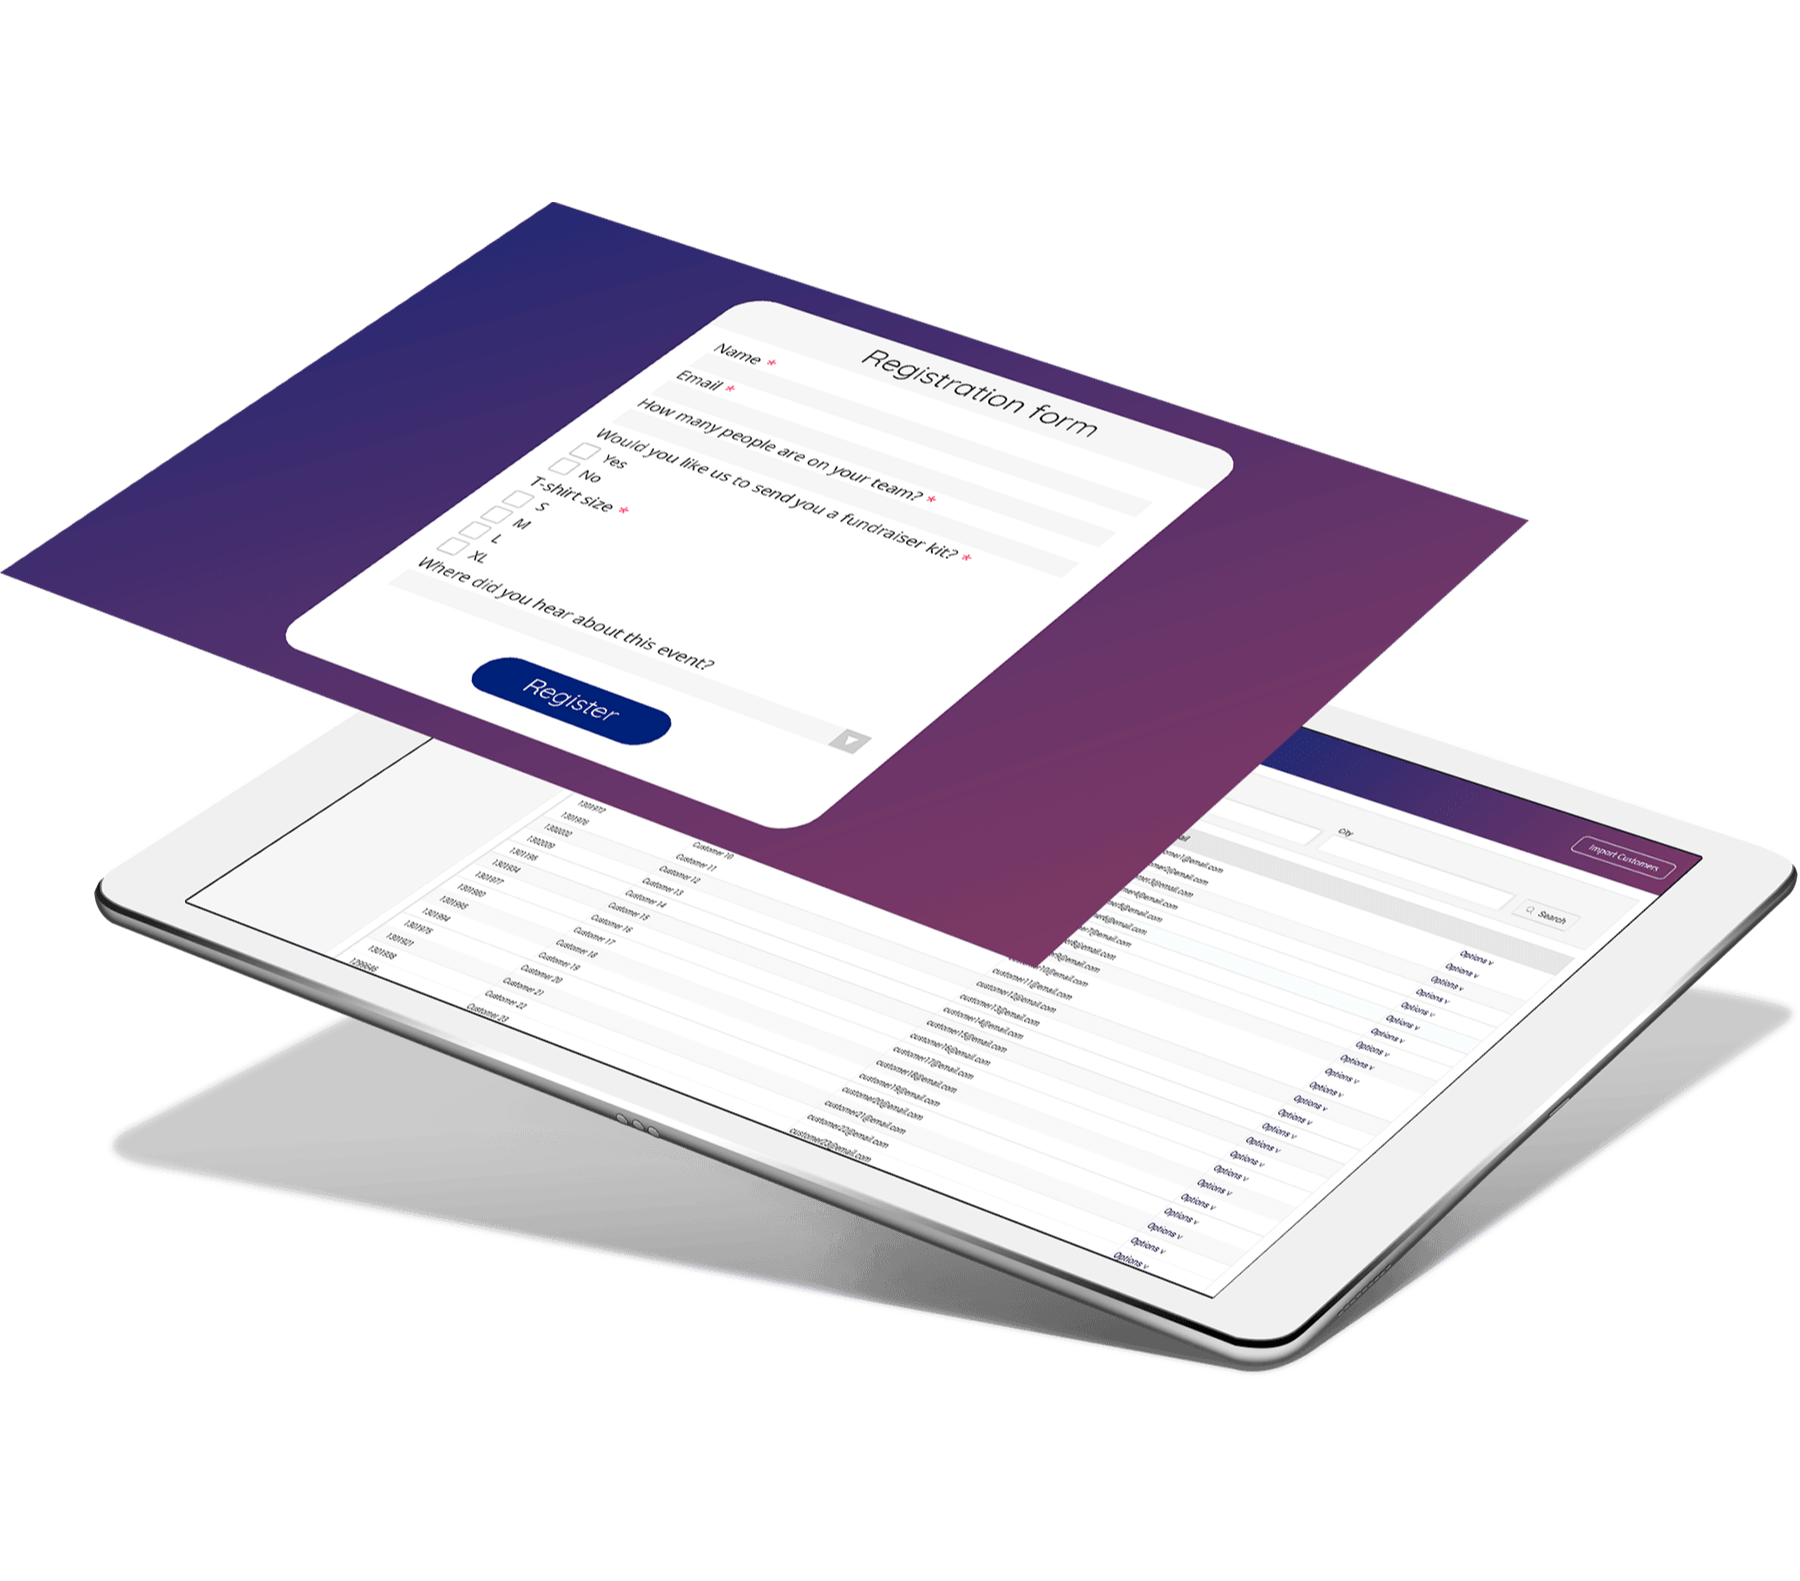 Online event registration form that works seamlessly on mobile devices